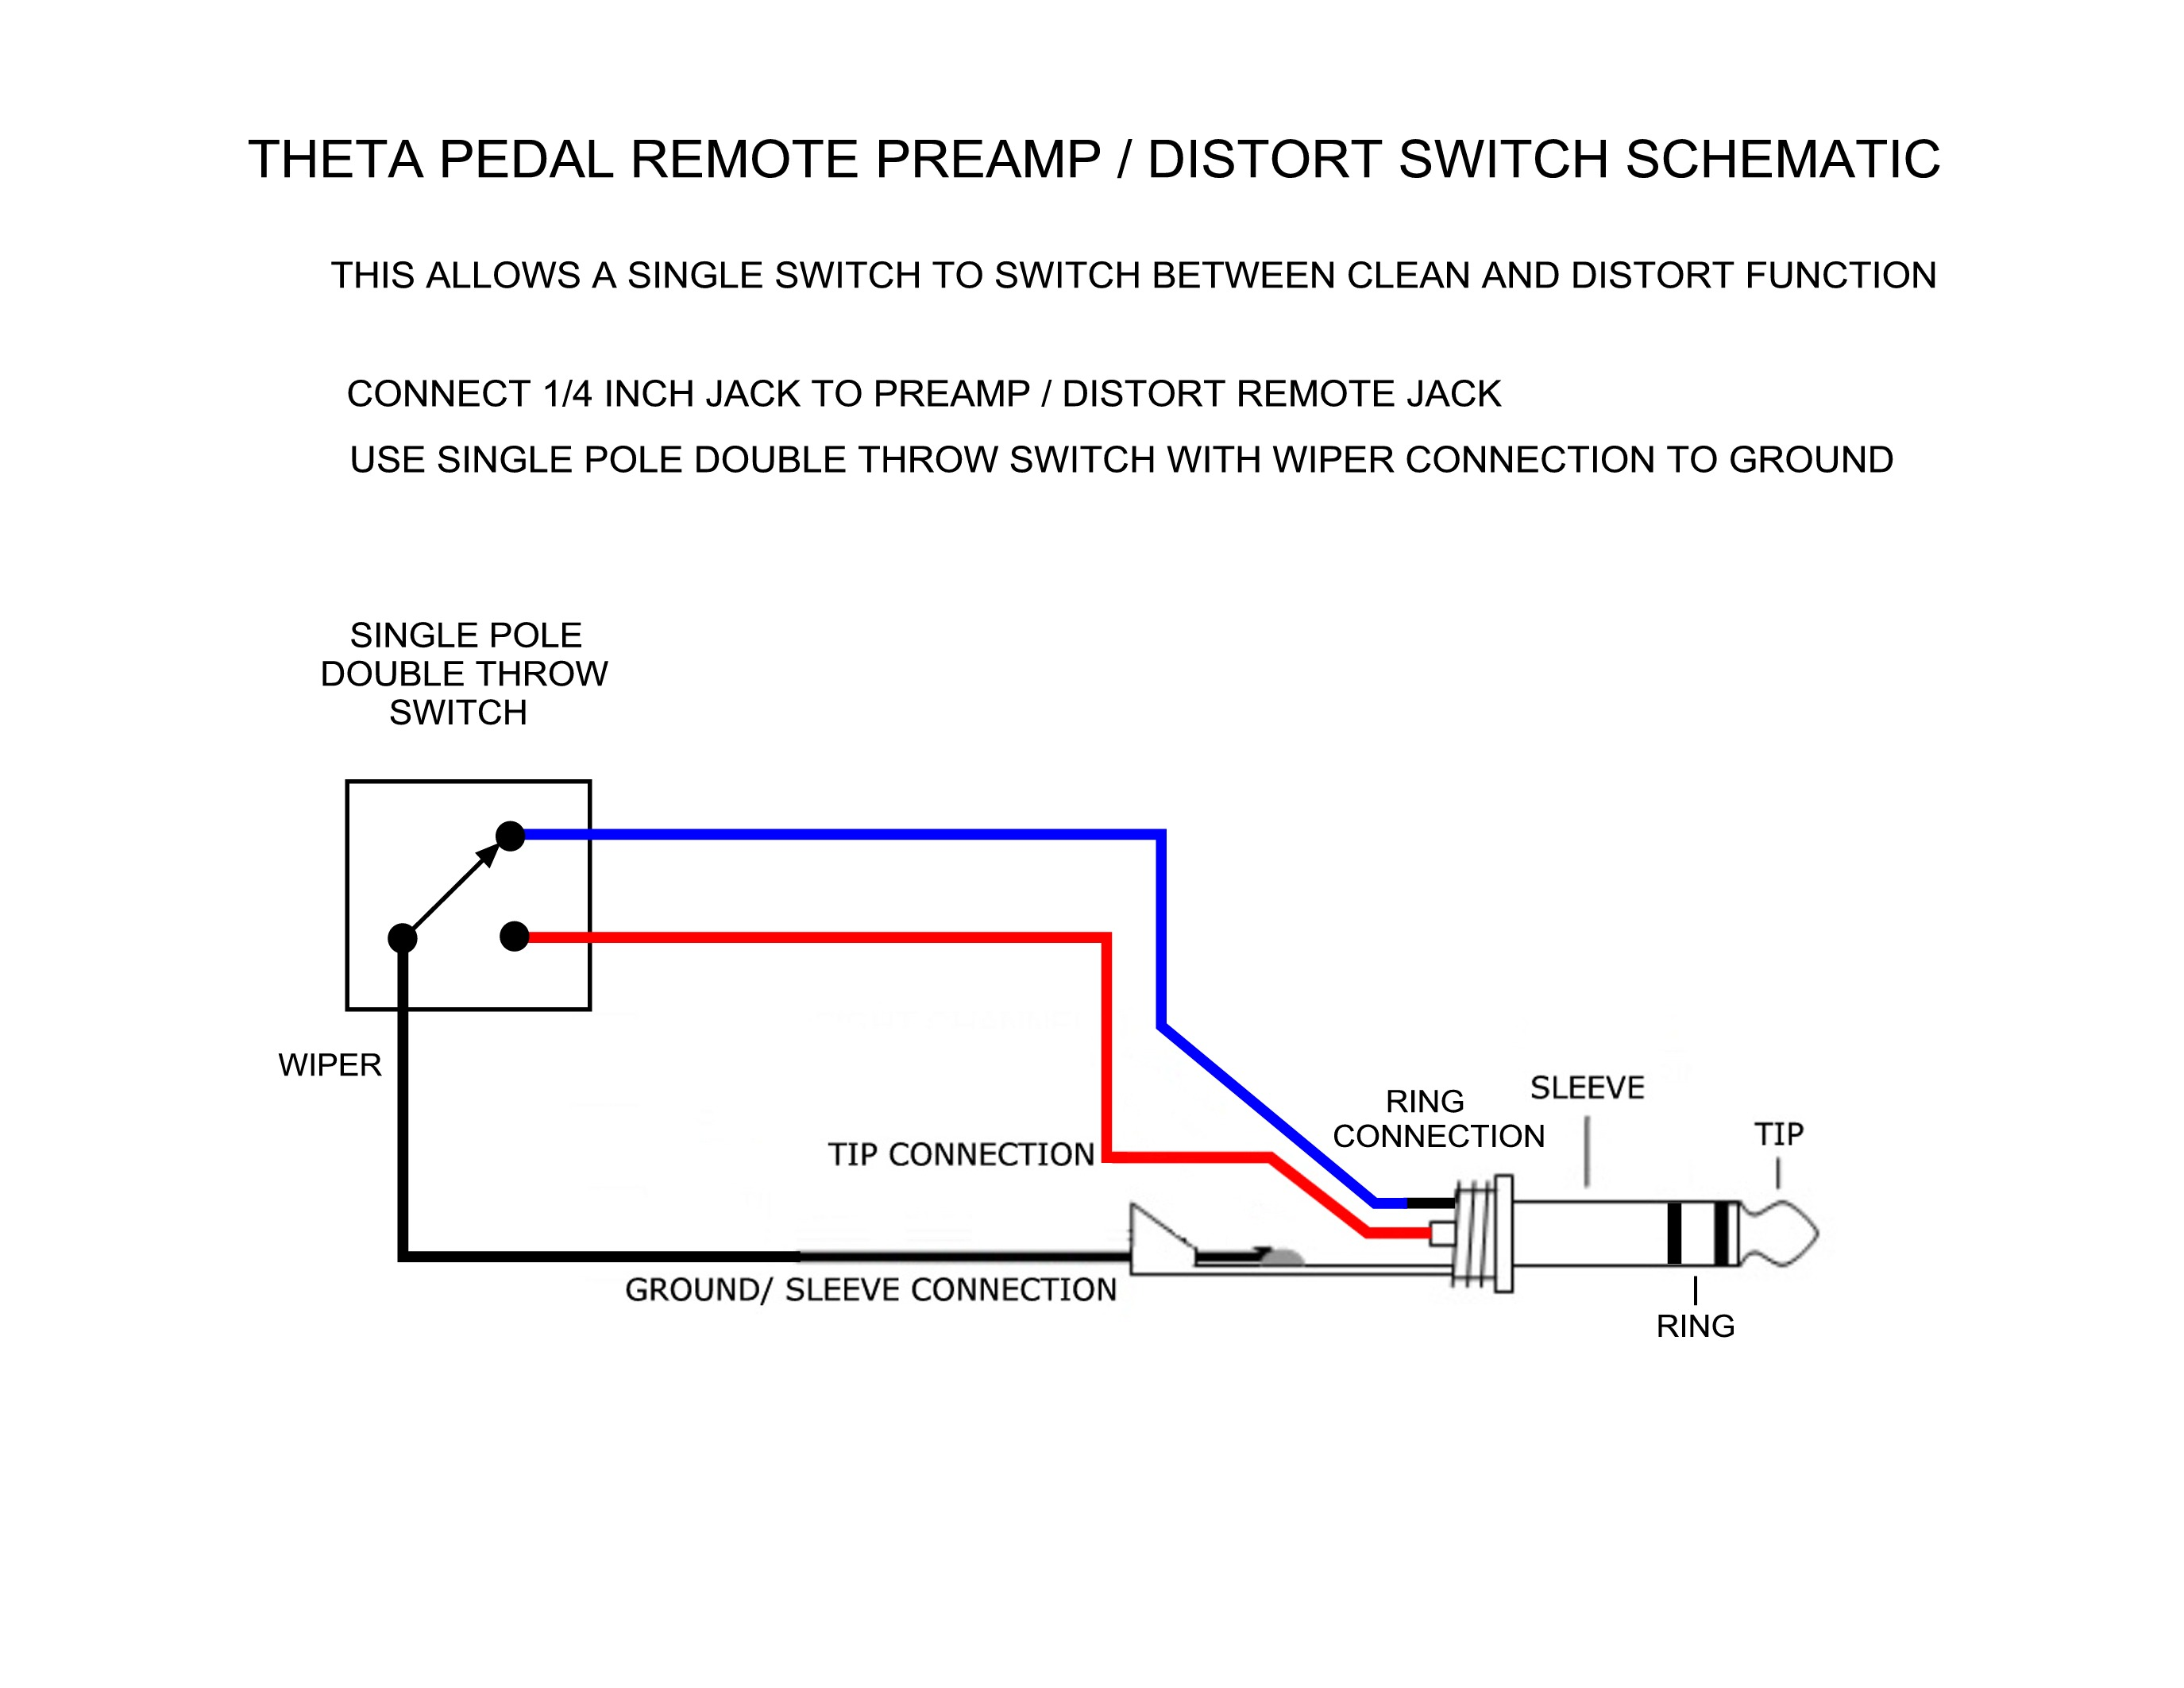 Product Faq Isp Technologiesisp Technologies Analog Controller Circuit Project Based Onamp Using Simulation With Theta Pedal Remote Switch Schematic